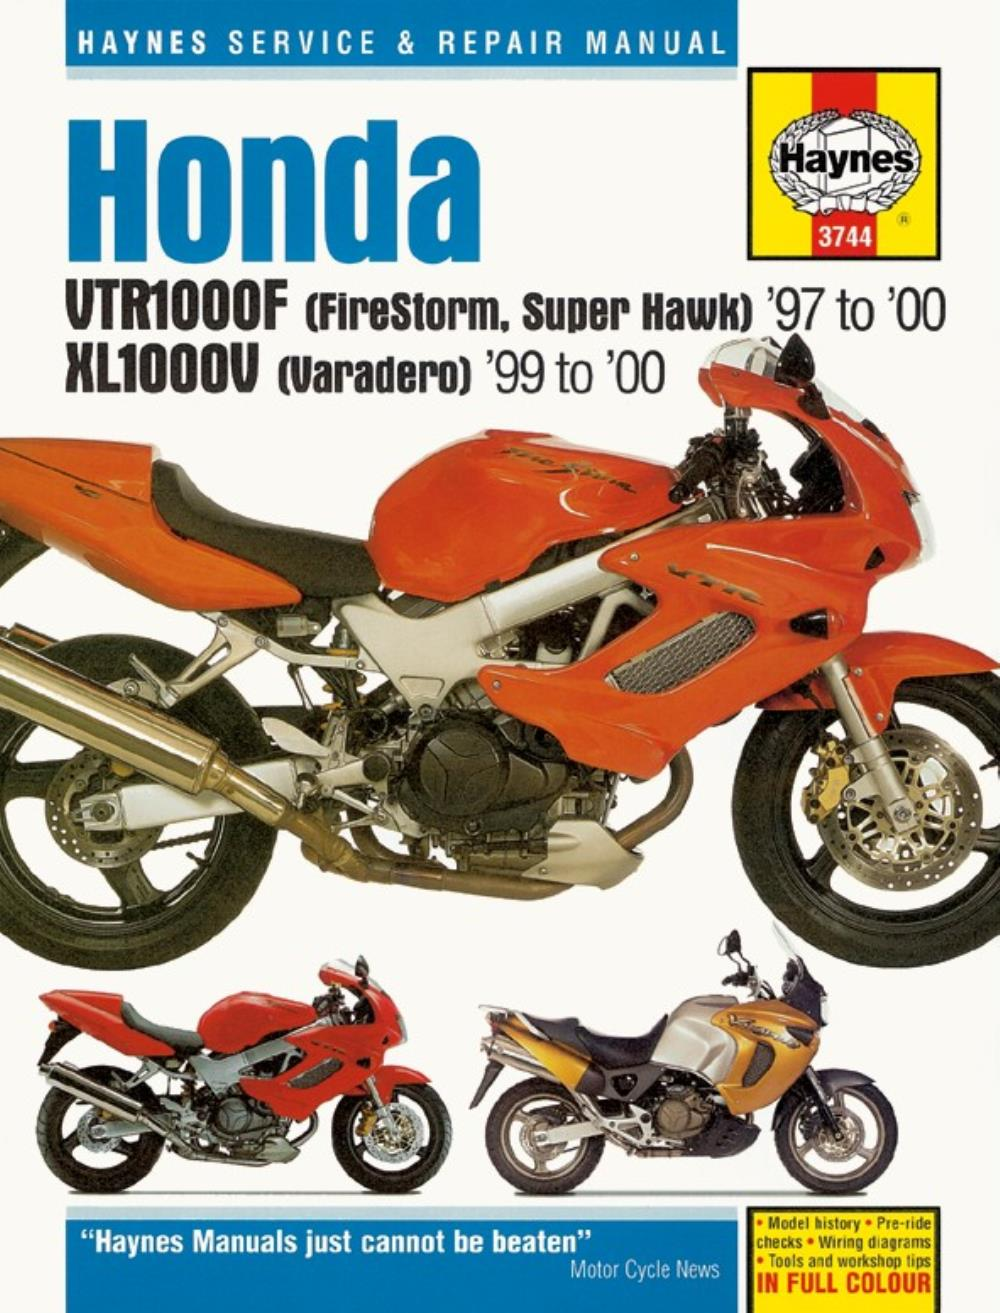 workshop manual honda vtr1000f 1997 2000 xl1000v varadero 1999 2008 rh ebay co uk VTR1000F Engine Honda VTR1000 Superhawk